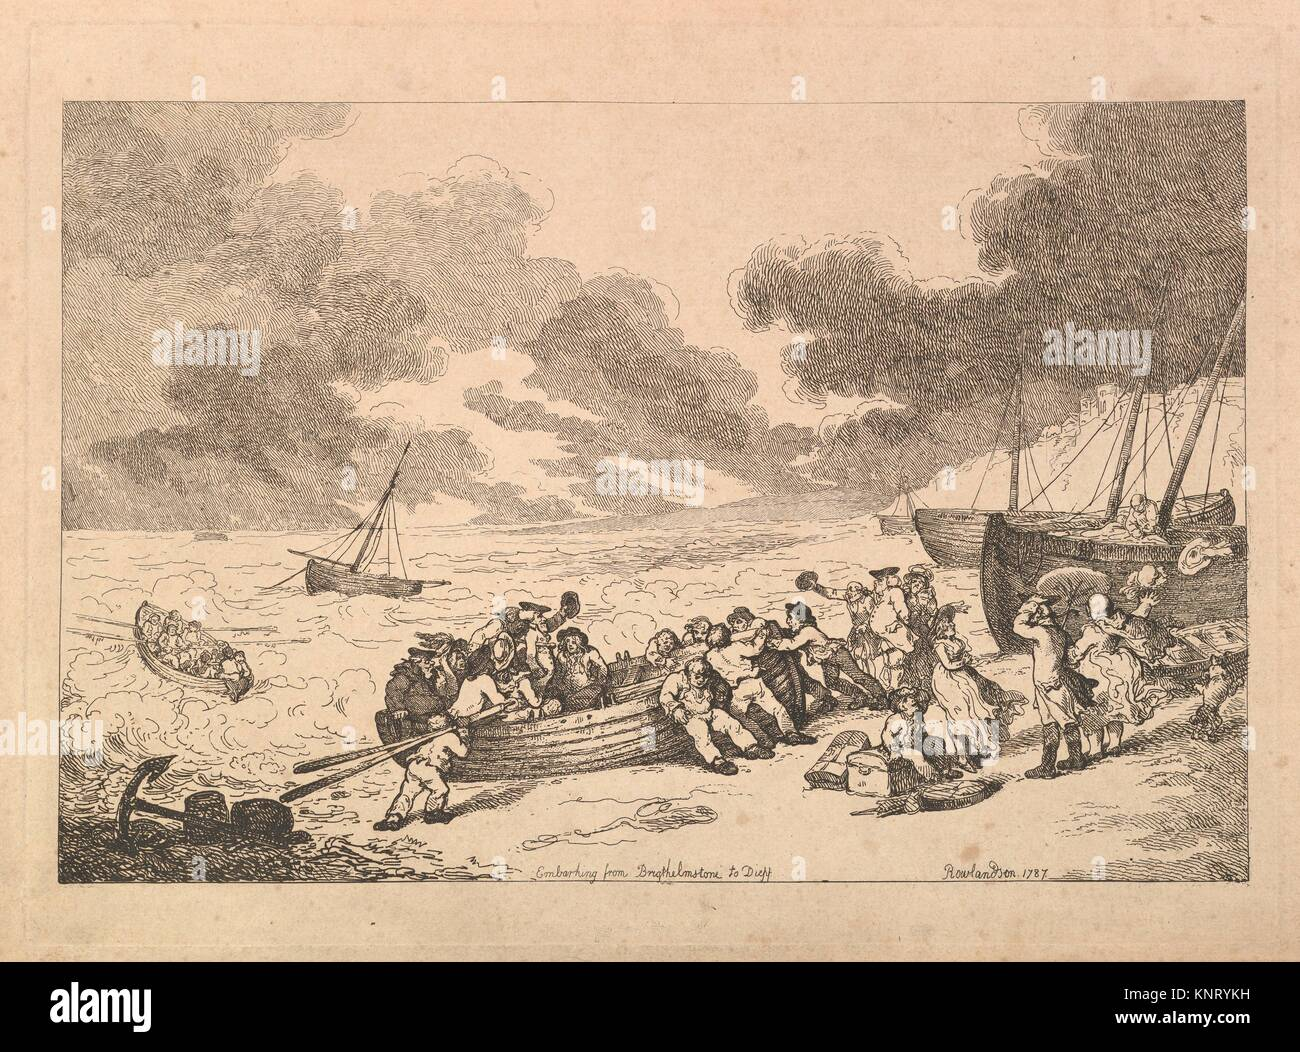 Embarking from Brighthelmstone to Dieppe. Series/Portfolio: Imitations of Modern Drawings; Artist: Thomas Rowlandson - Stock Image